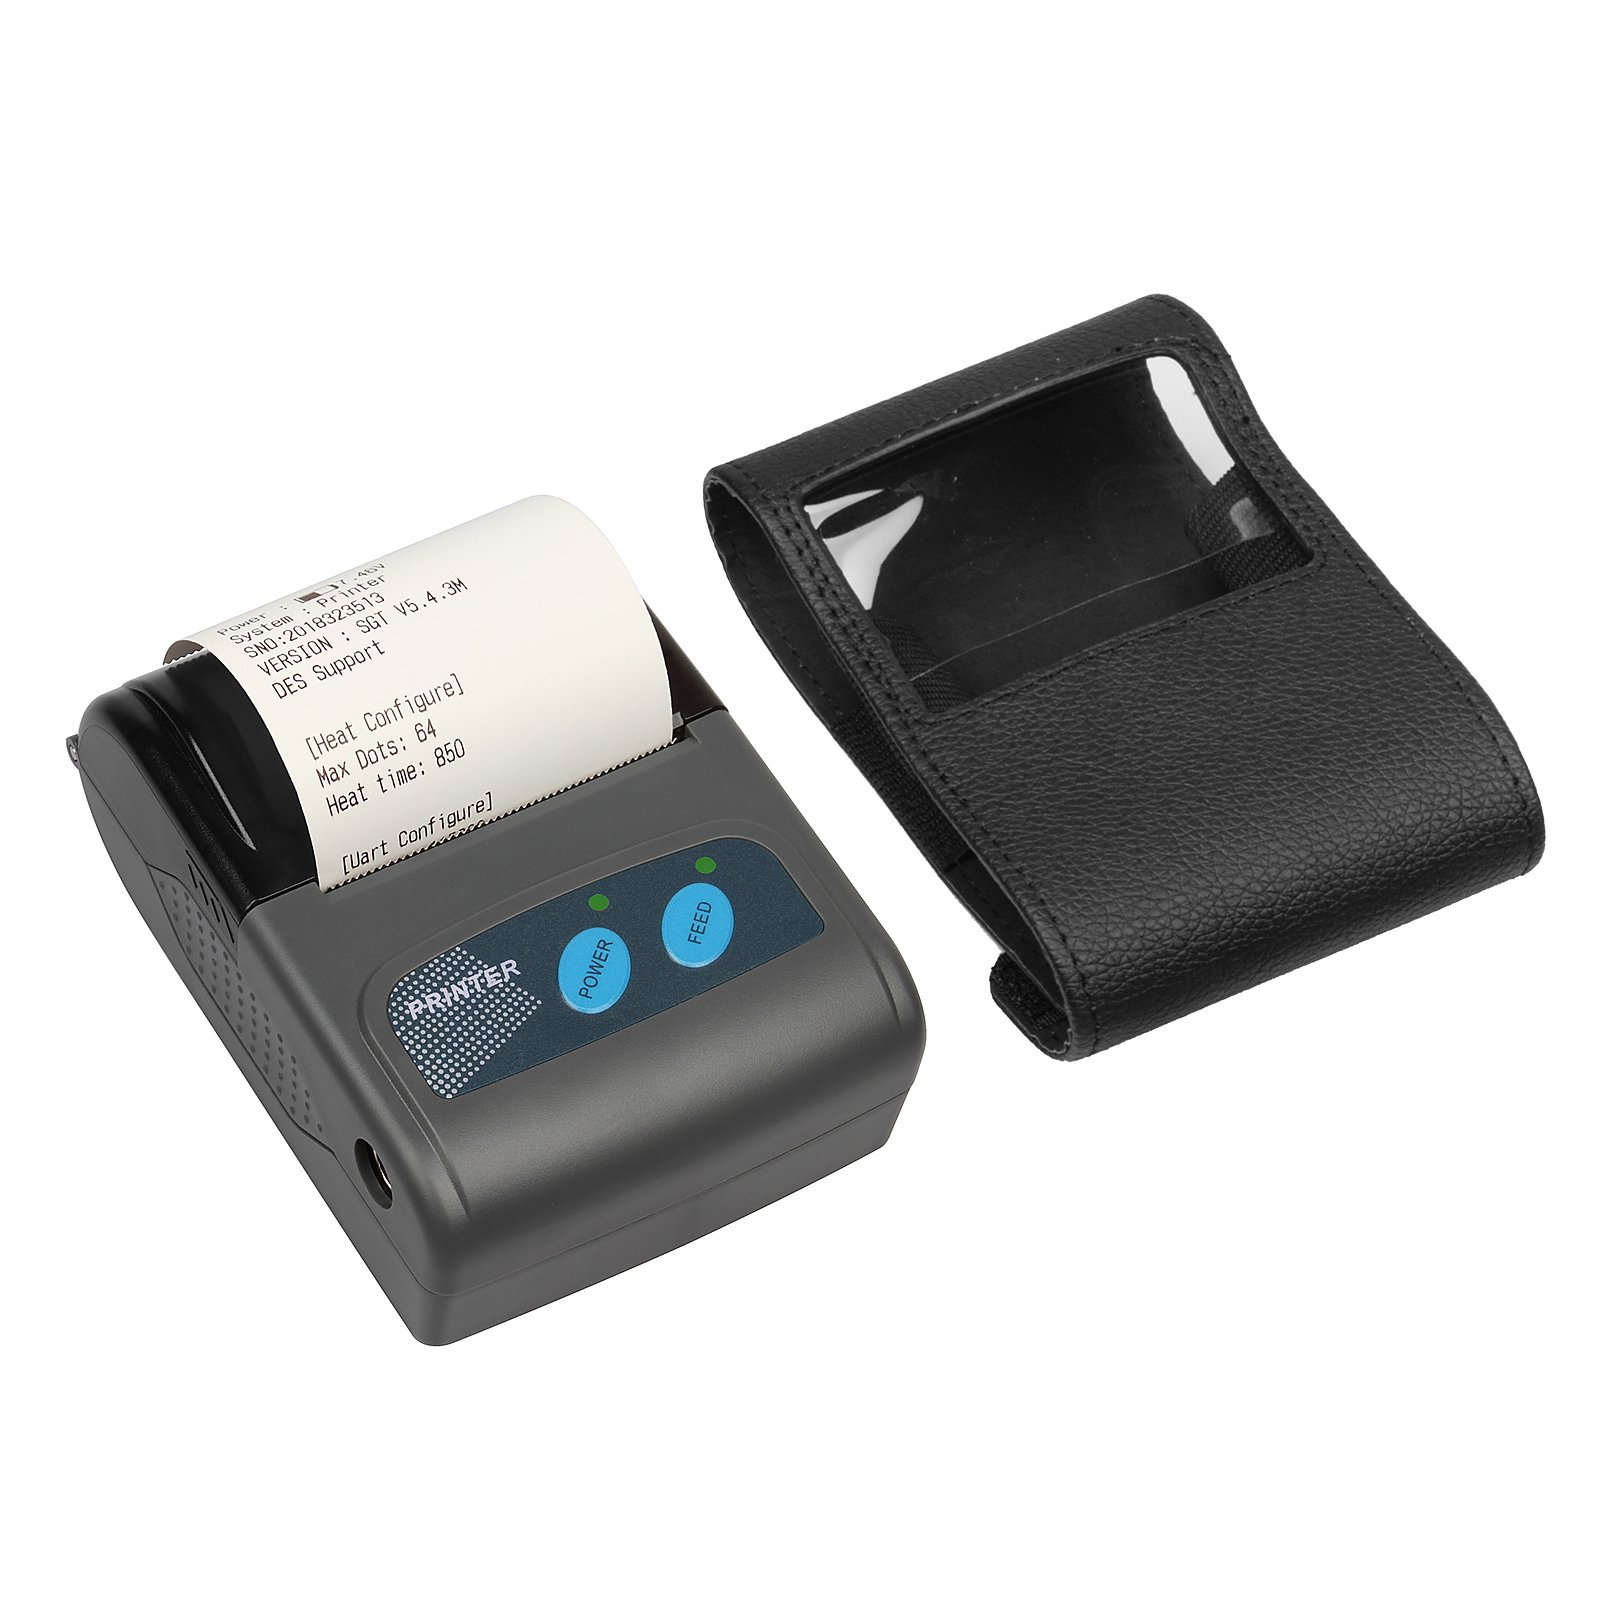 GBGS Bluetooth USB Thermal Receipt Printer Wireless Handheld, with Leather Belt and Cutter, Rechargeable Battery, 90mm/s Printing Speed, for Android/iPhone/iPad/Windows/Linux +ESC/POS, Not for Mac os